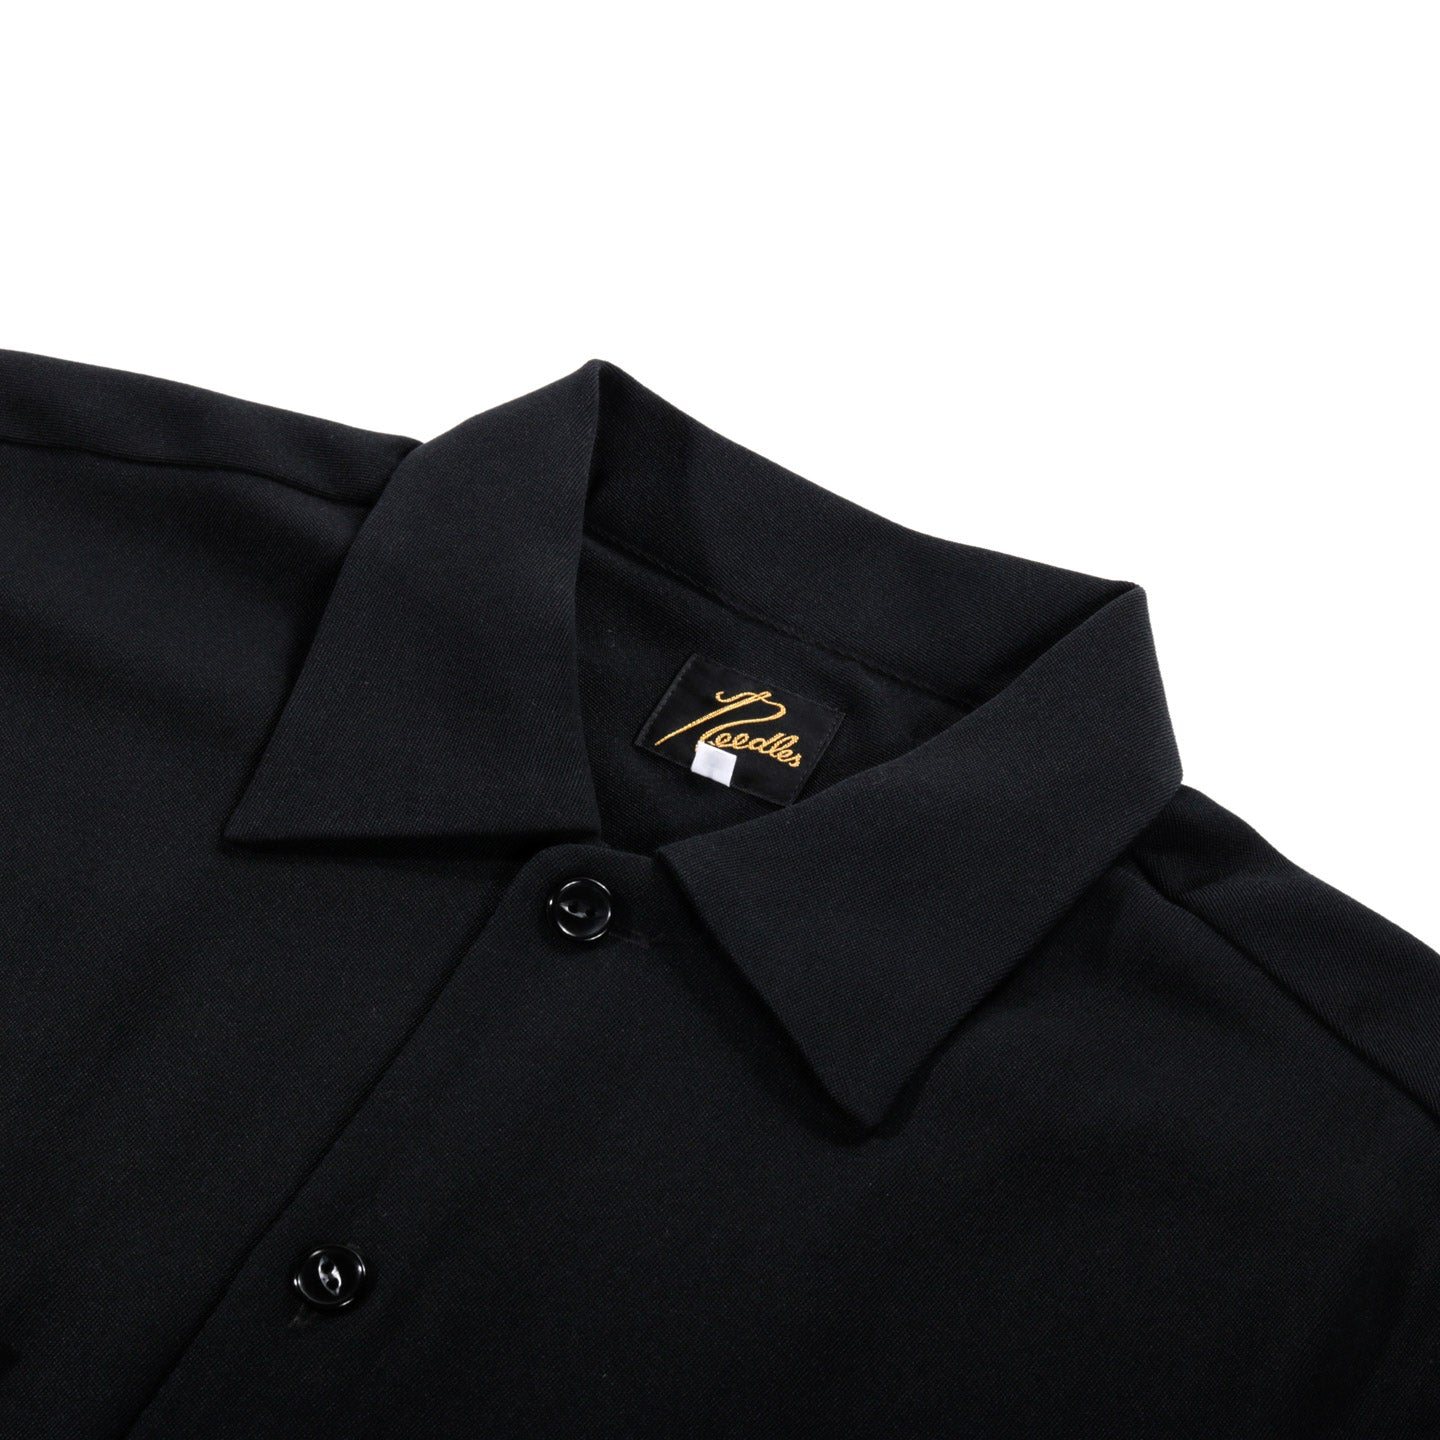 NEEDLES C.O.B. ONE-UP SHIRT POLY WOOL DOESKIN BLACK